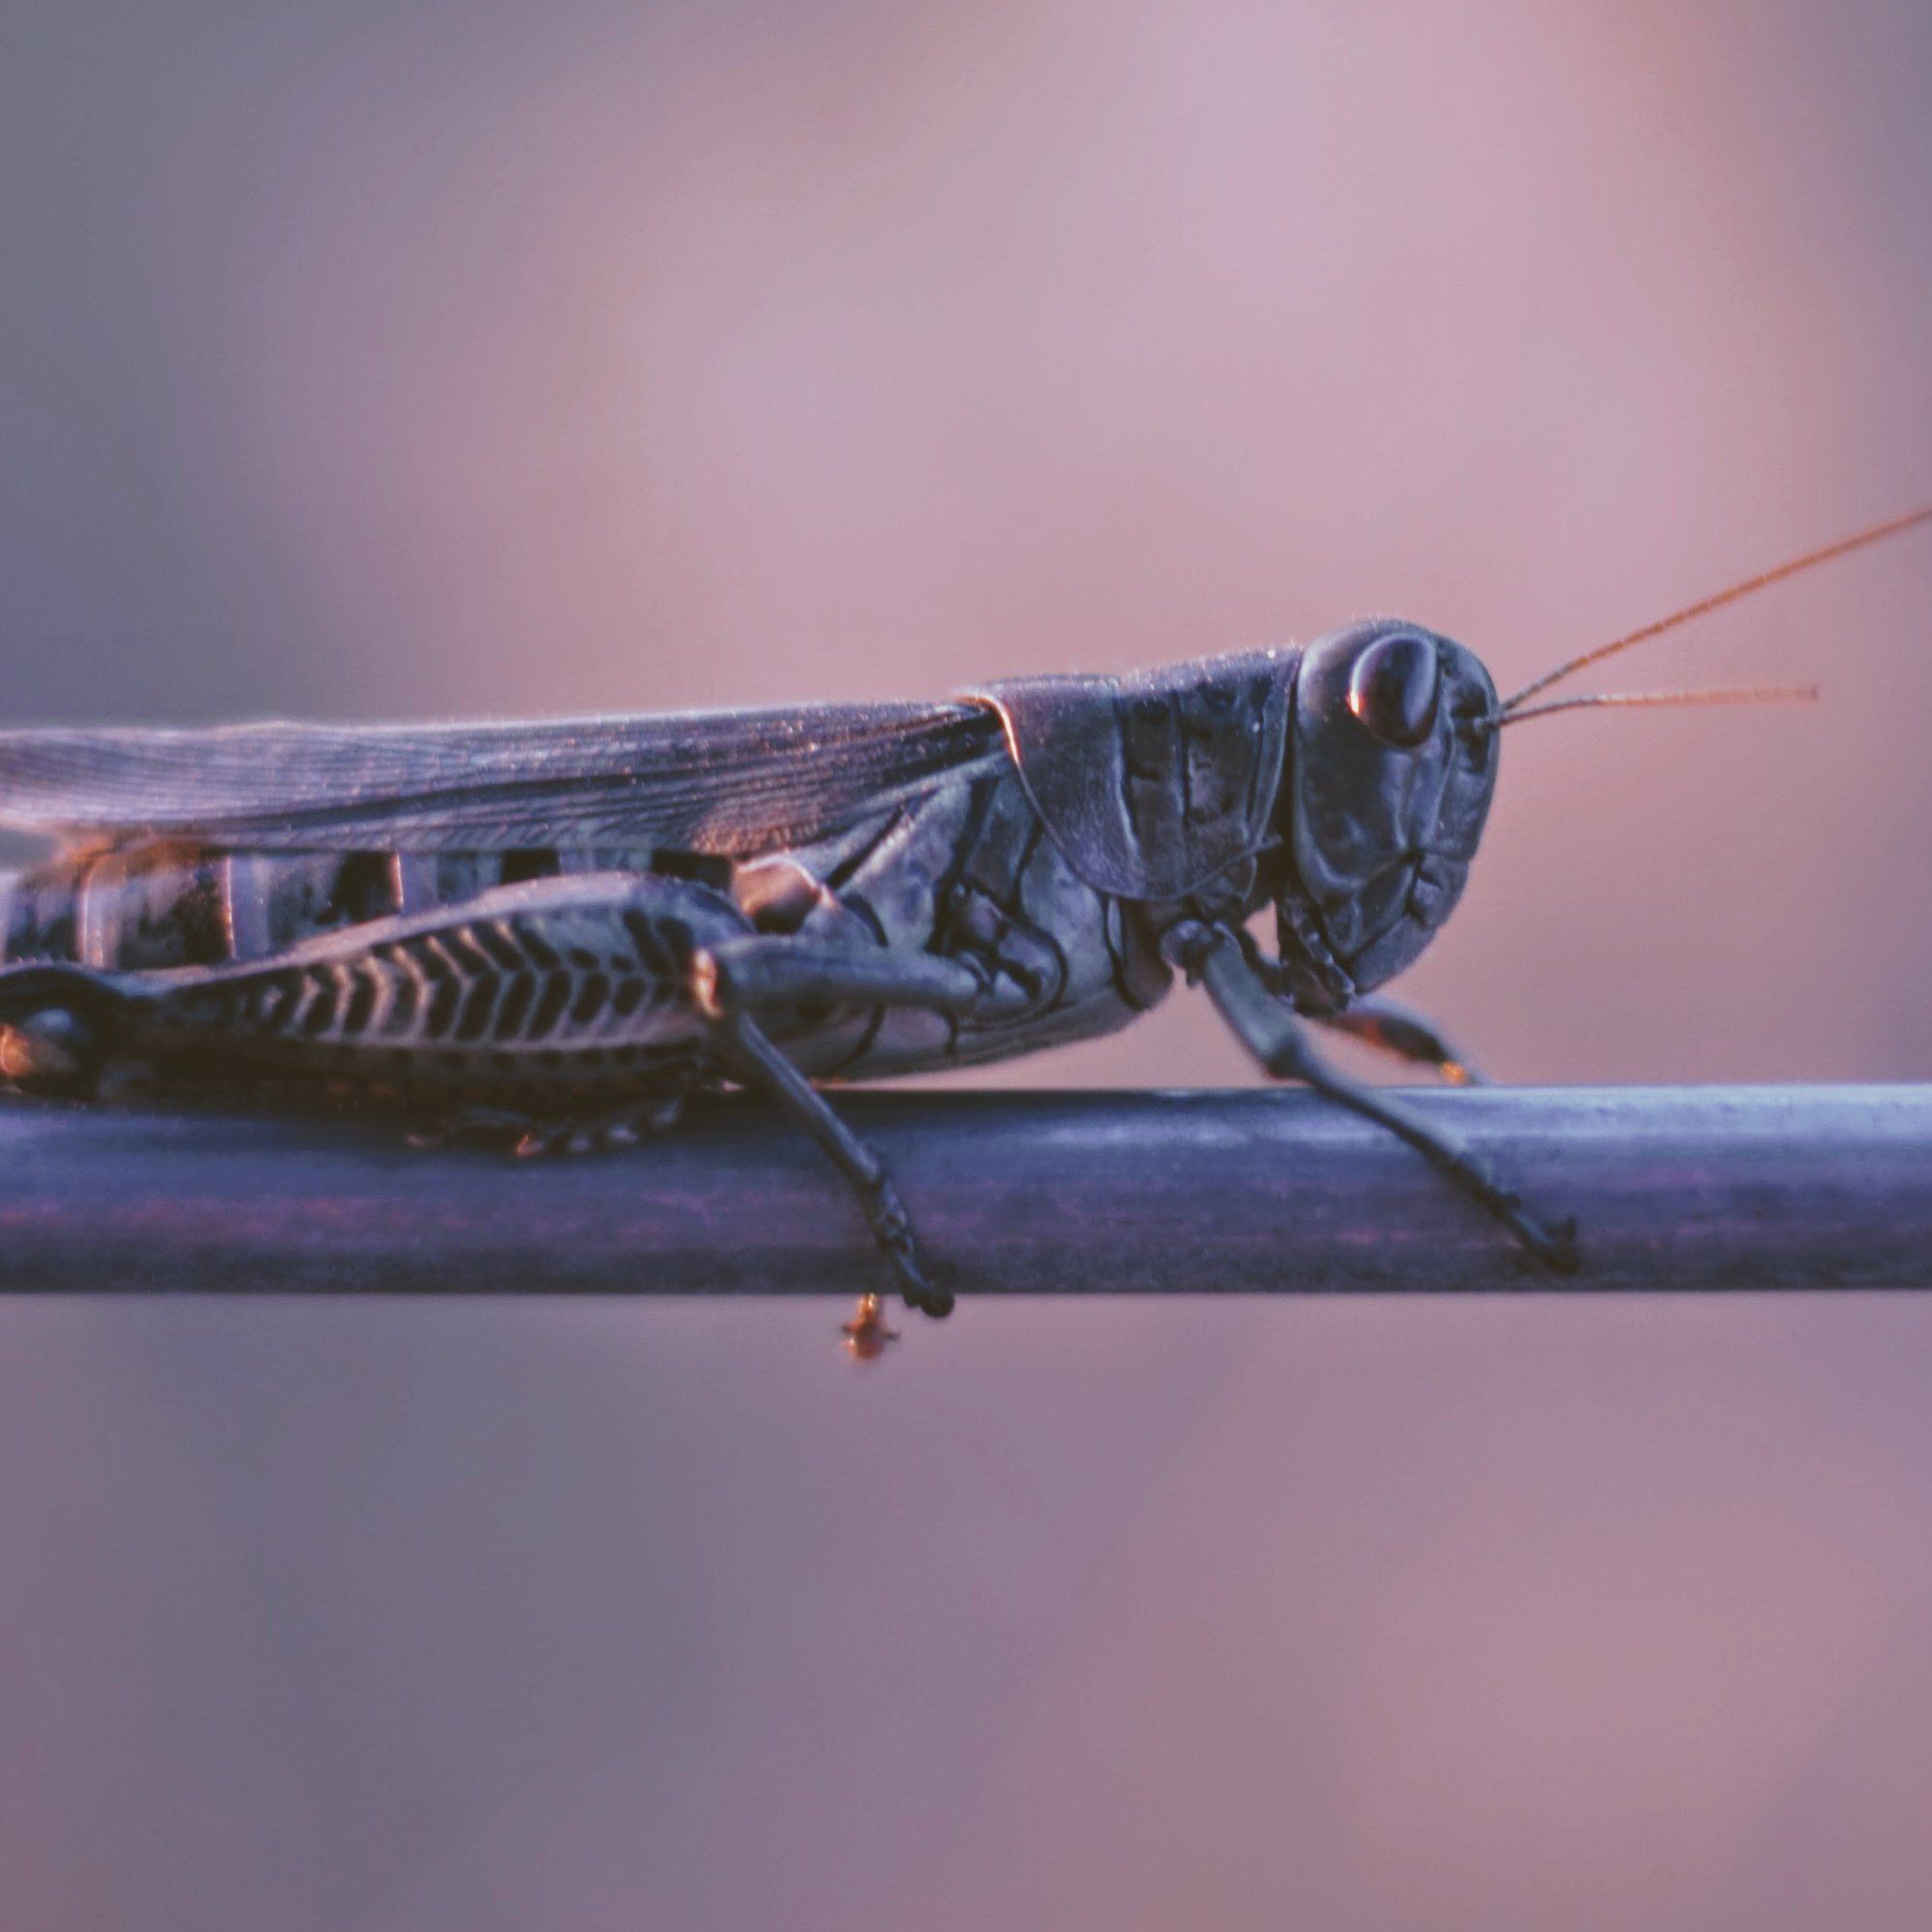 PLAGUE OF LOCUSTS HITS MIDDLE EAST RIGHT   Intercessors ...